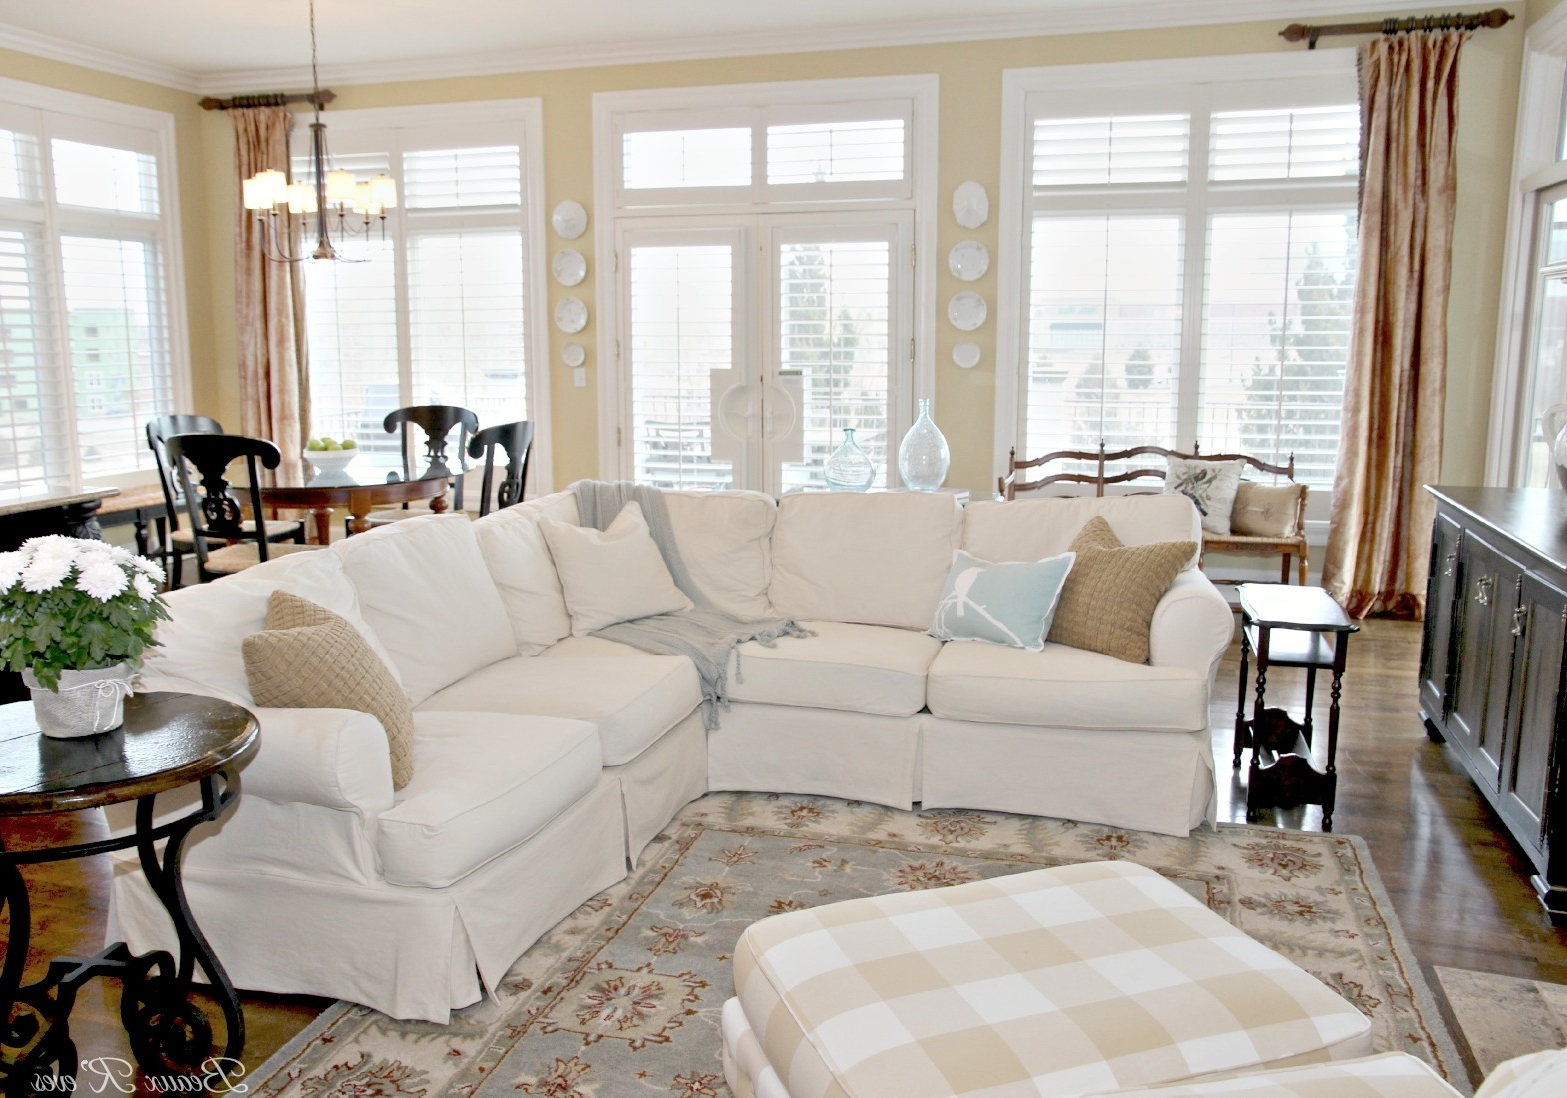 Well Known Slipcover Sectional Sofas With Chaise Within Beaux R'eves: Pottery Barn Knock Off Jcpenney Slipcovered (View 11 of 15)